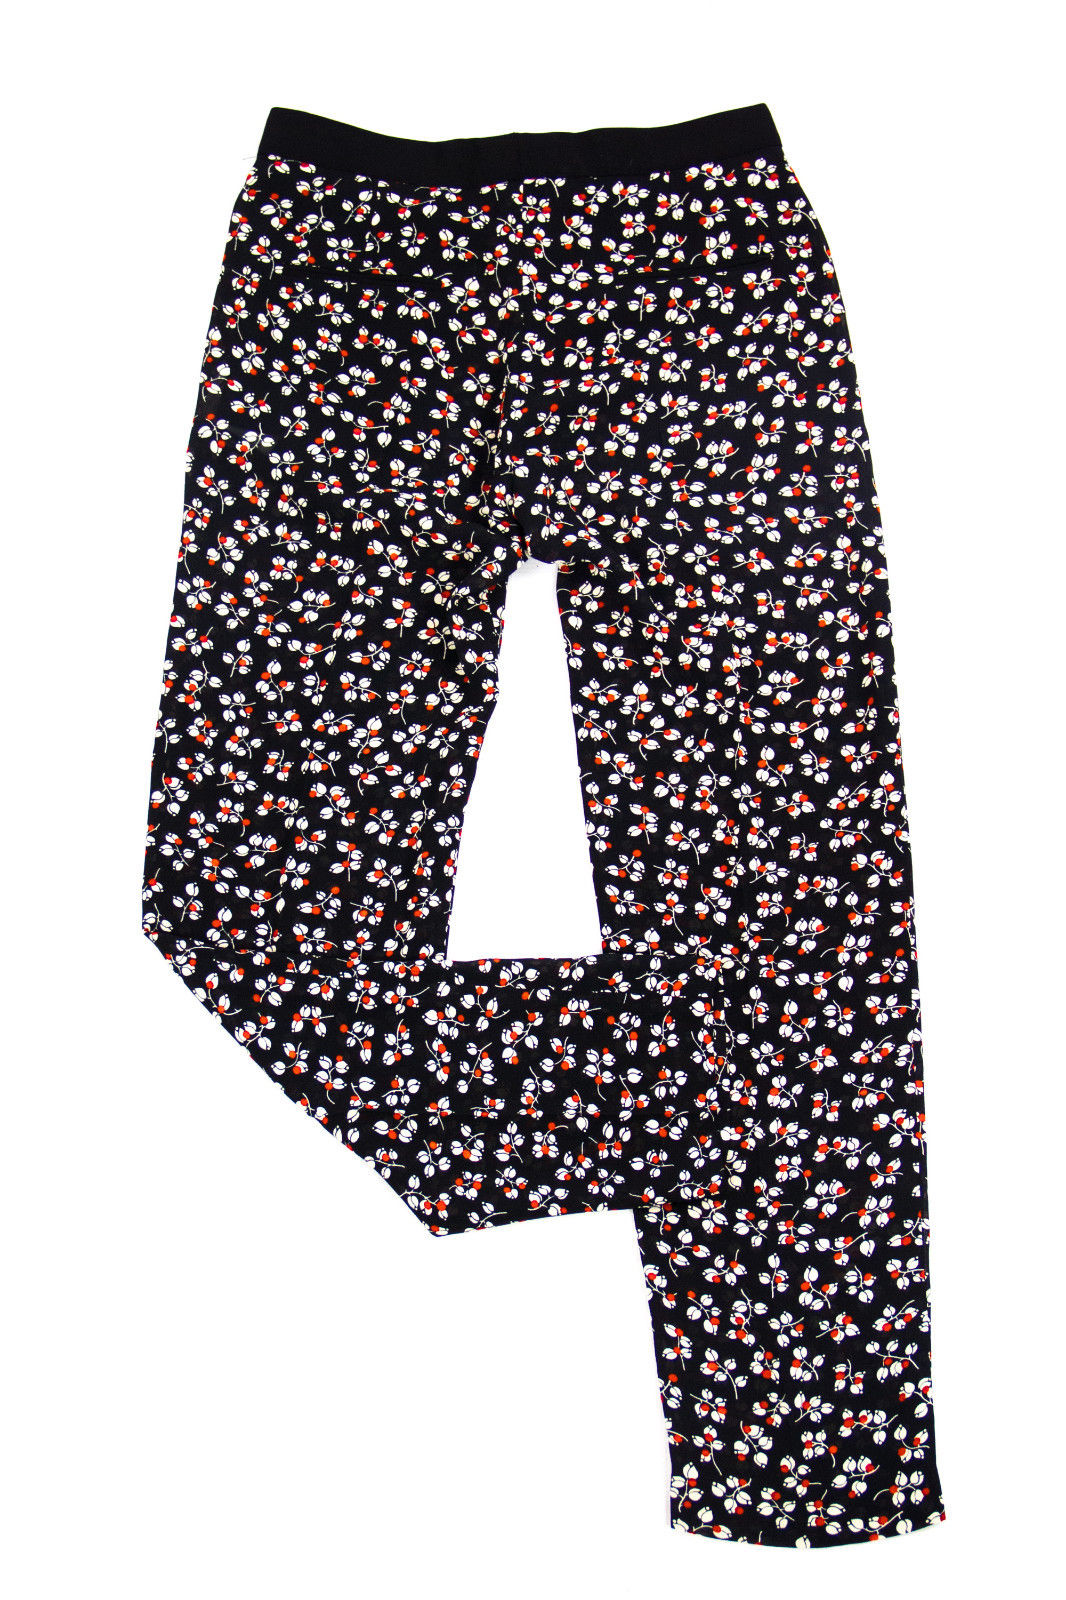 SANDRO Floral Print Lightweight Pants, SIZE 1, SMALL - secondfirst